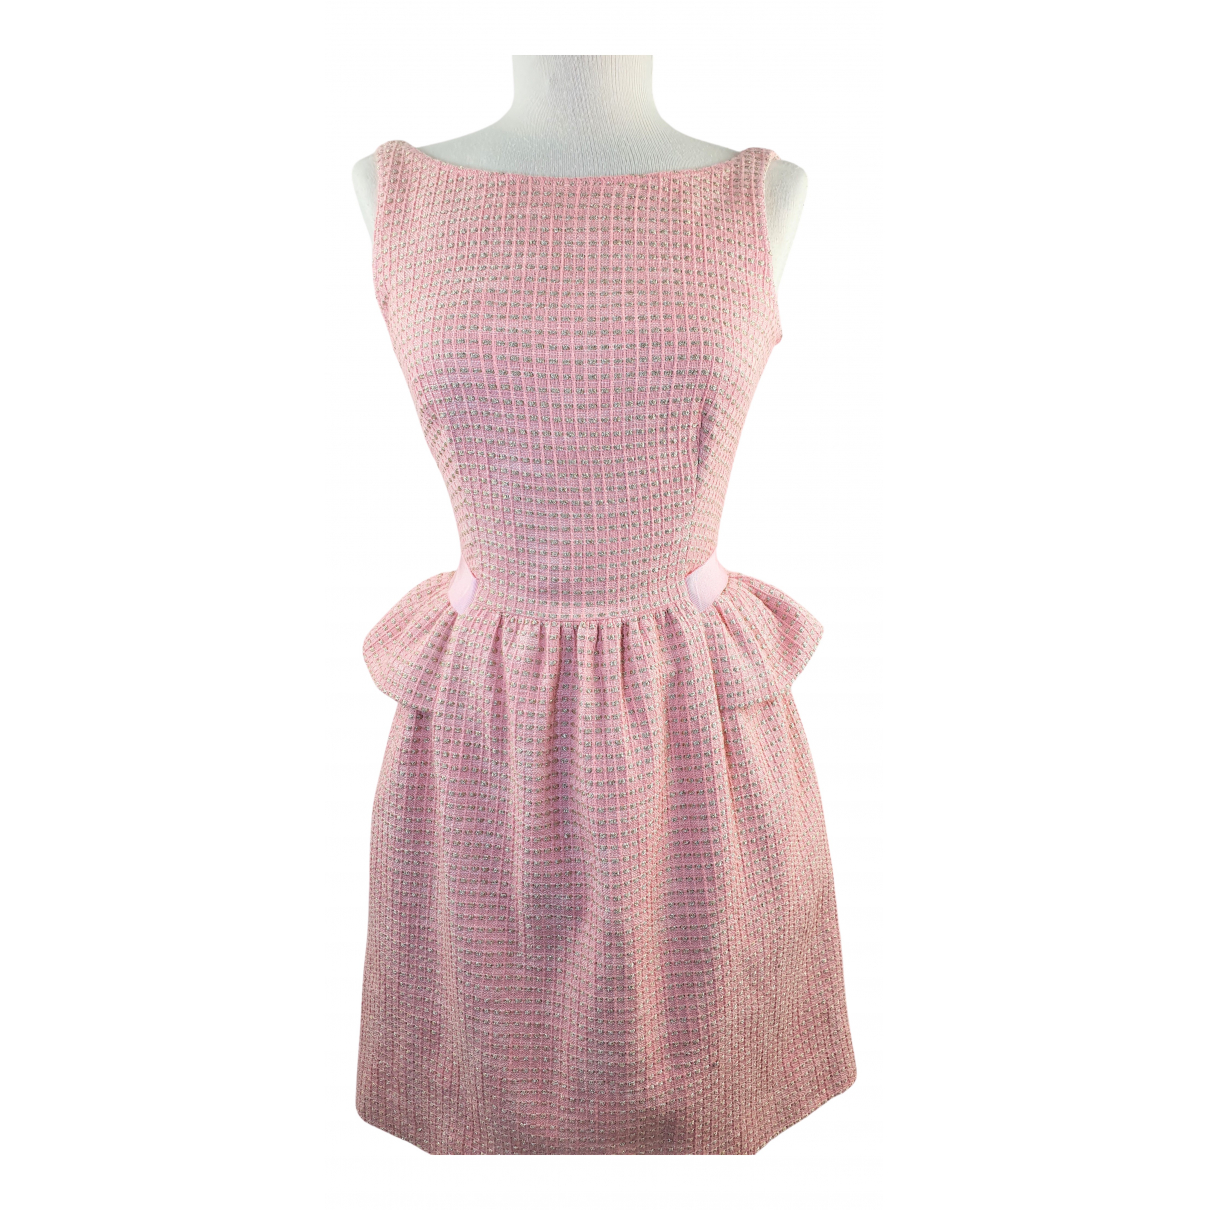 Moschino Cheap And Chic \N Pink Cotton dress for Women 38 IT